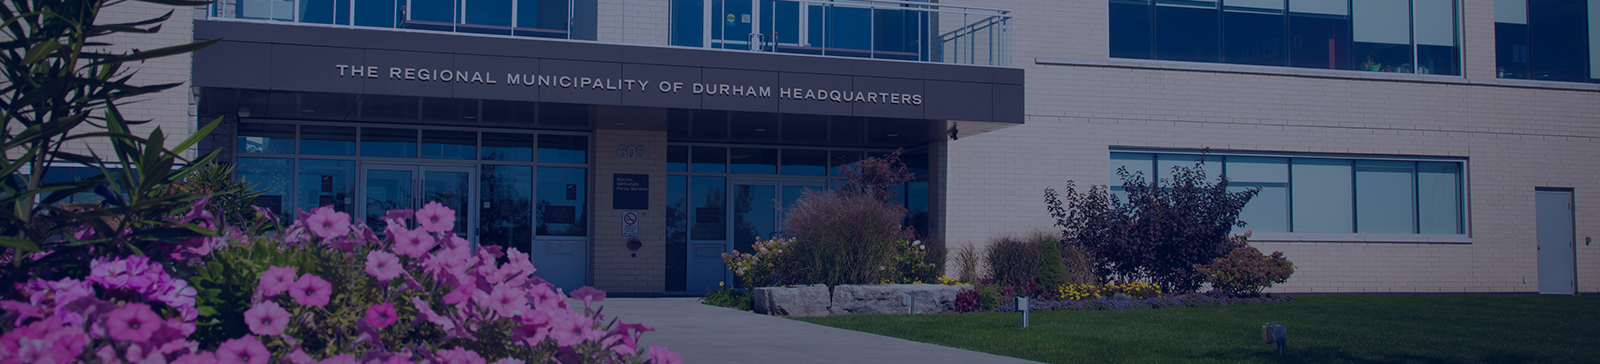 Image of Durham Region headquarters